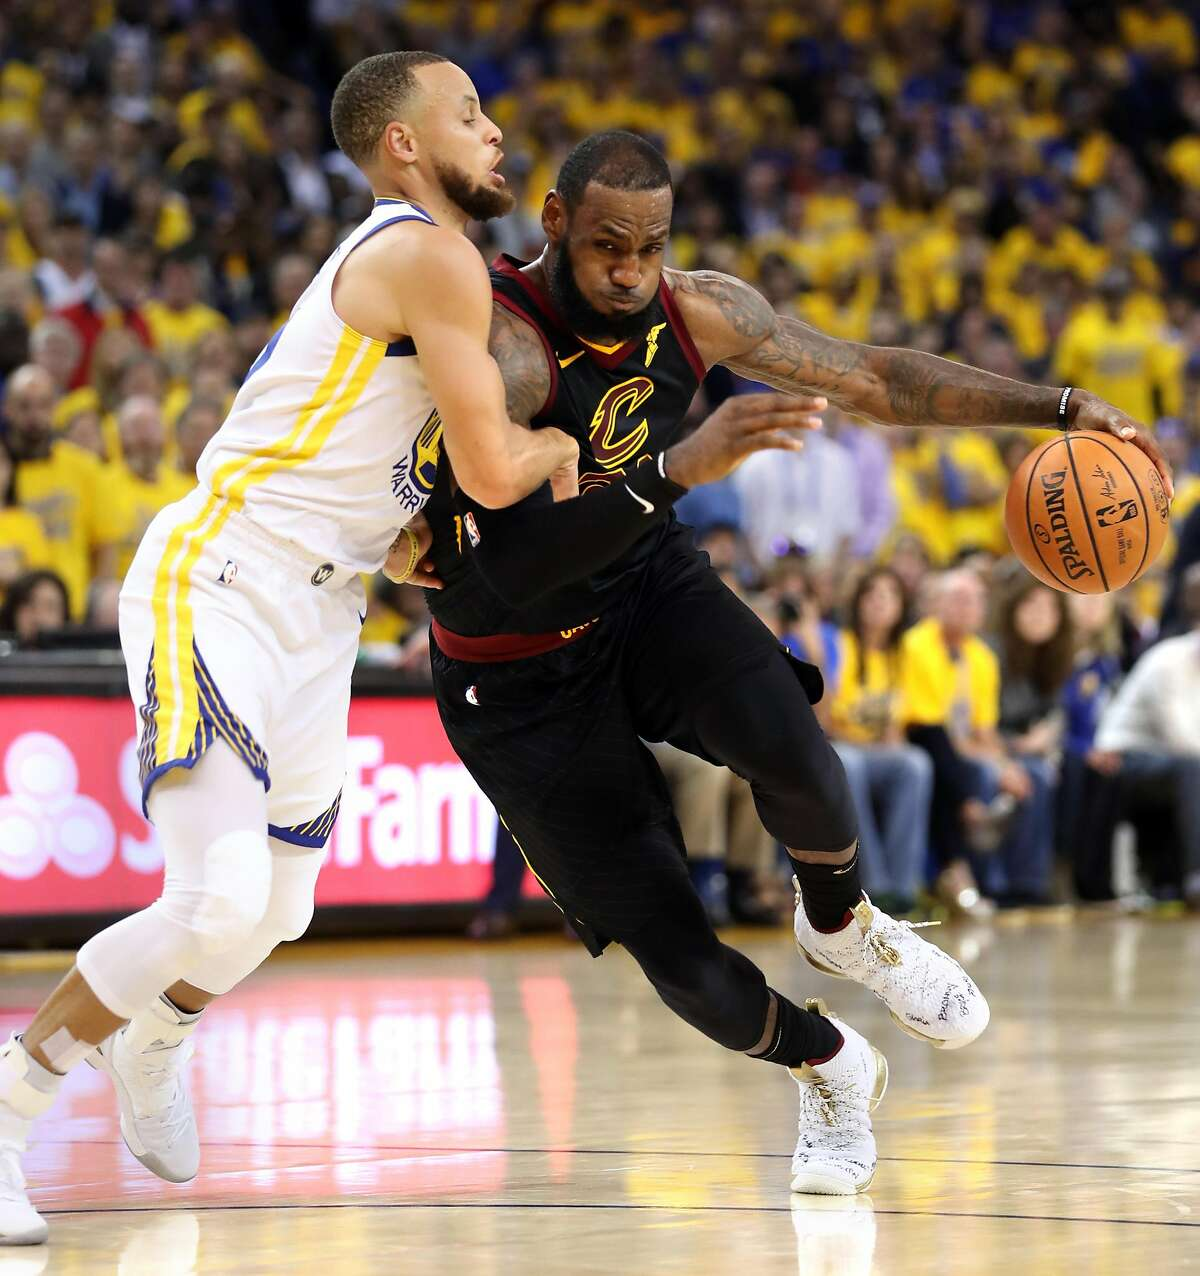 Cleveland Cavaliers' LeBron James drives on Golden State Warriors' Stephen Curry in 3rd quarter of Warriors' 124-114 win during Game 1 of the NBA Finals at Oracle Arena in Oakland, CA on Thursday, May 31, 2018.